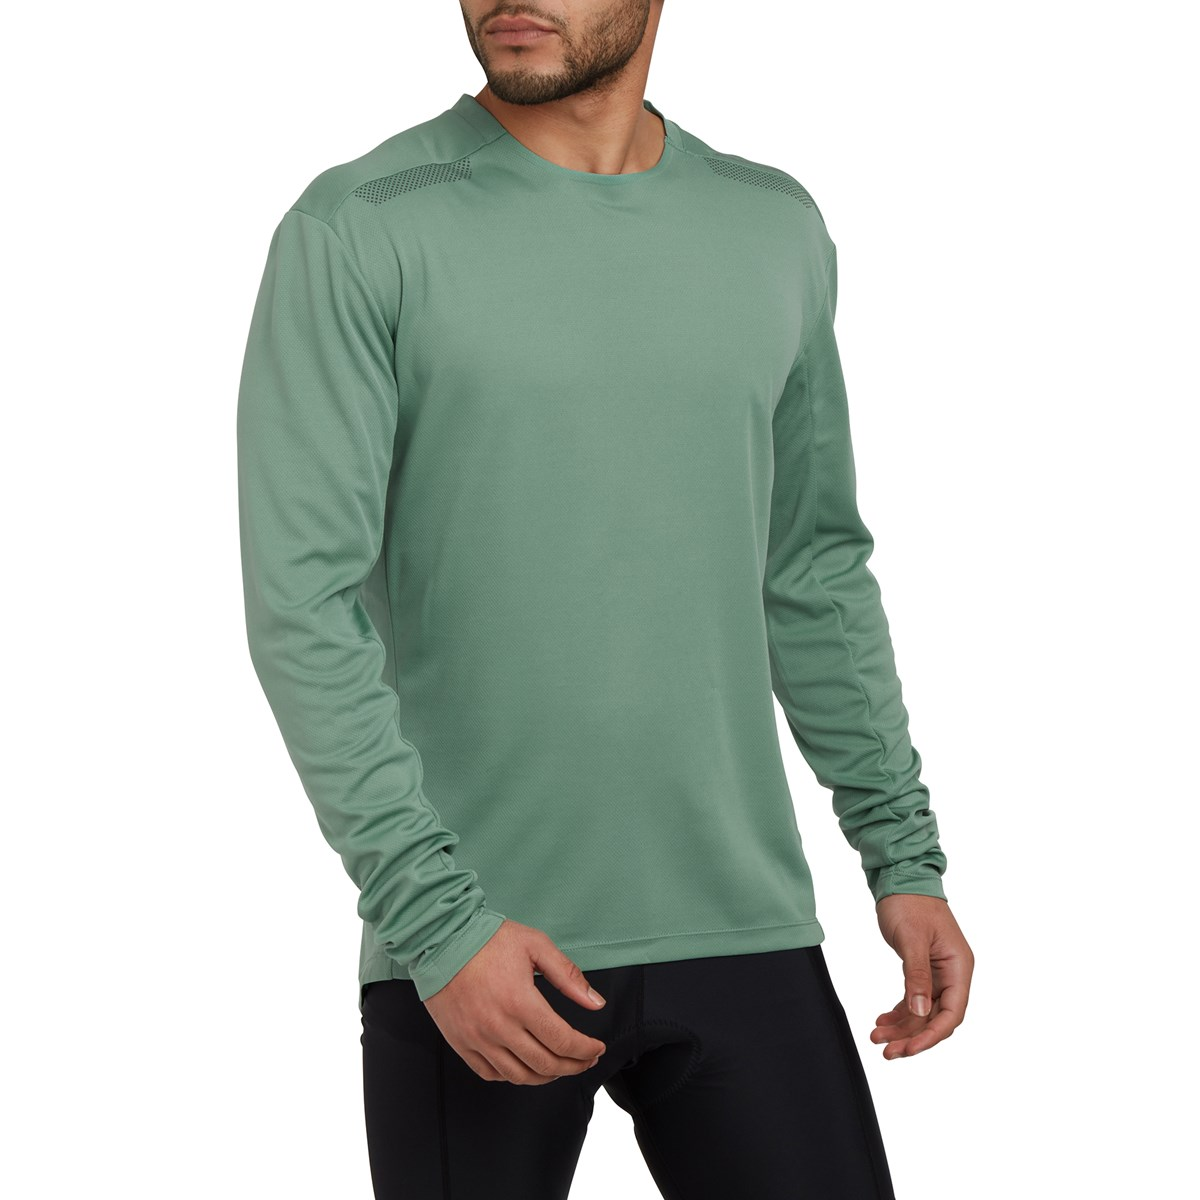 All Road Performance Long Sleeve Tee